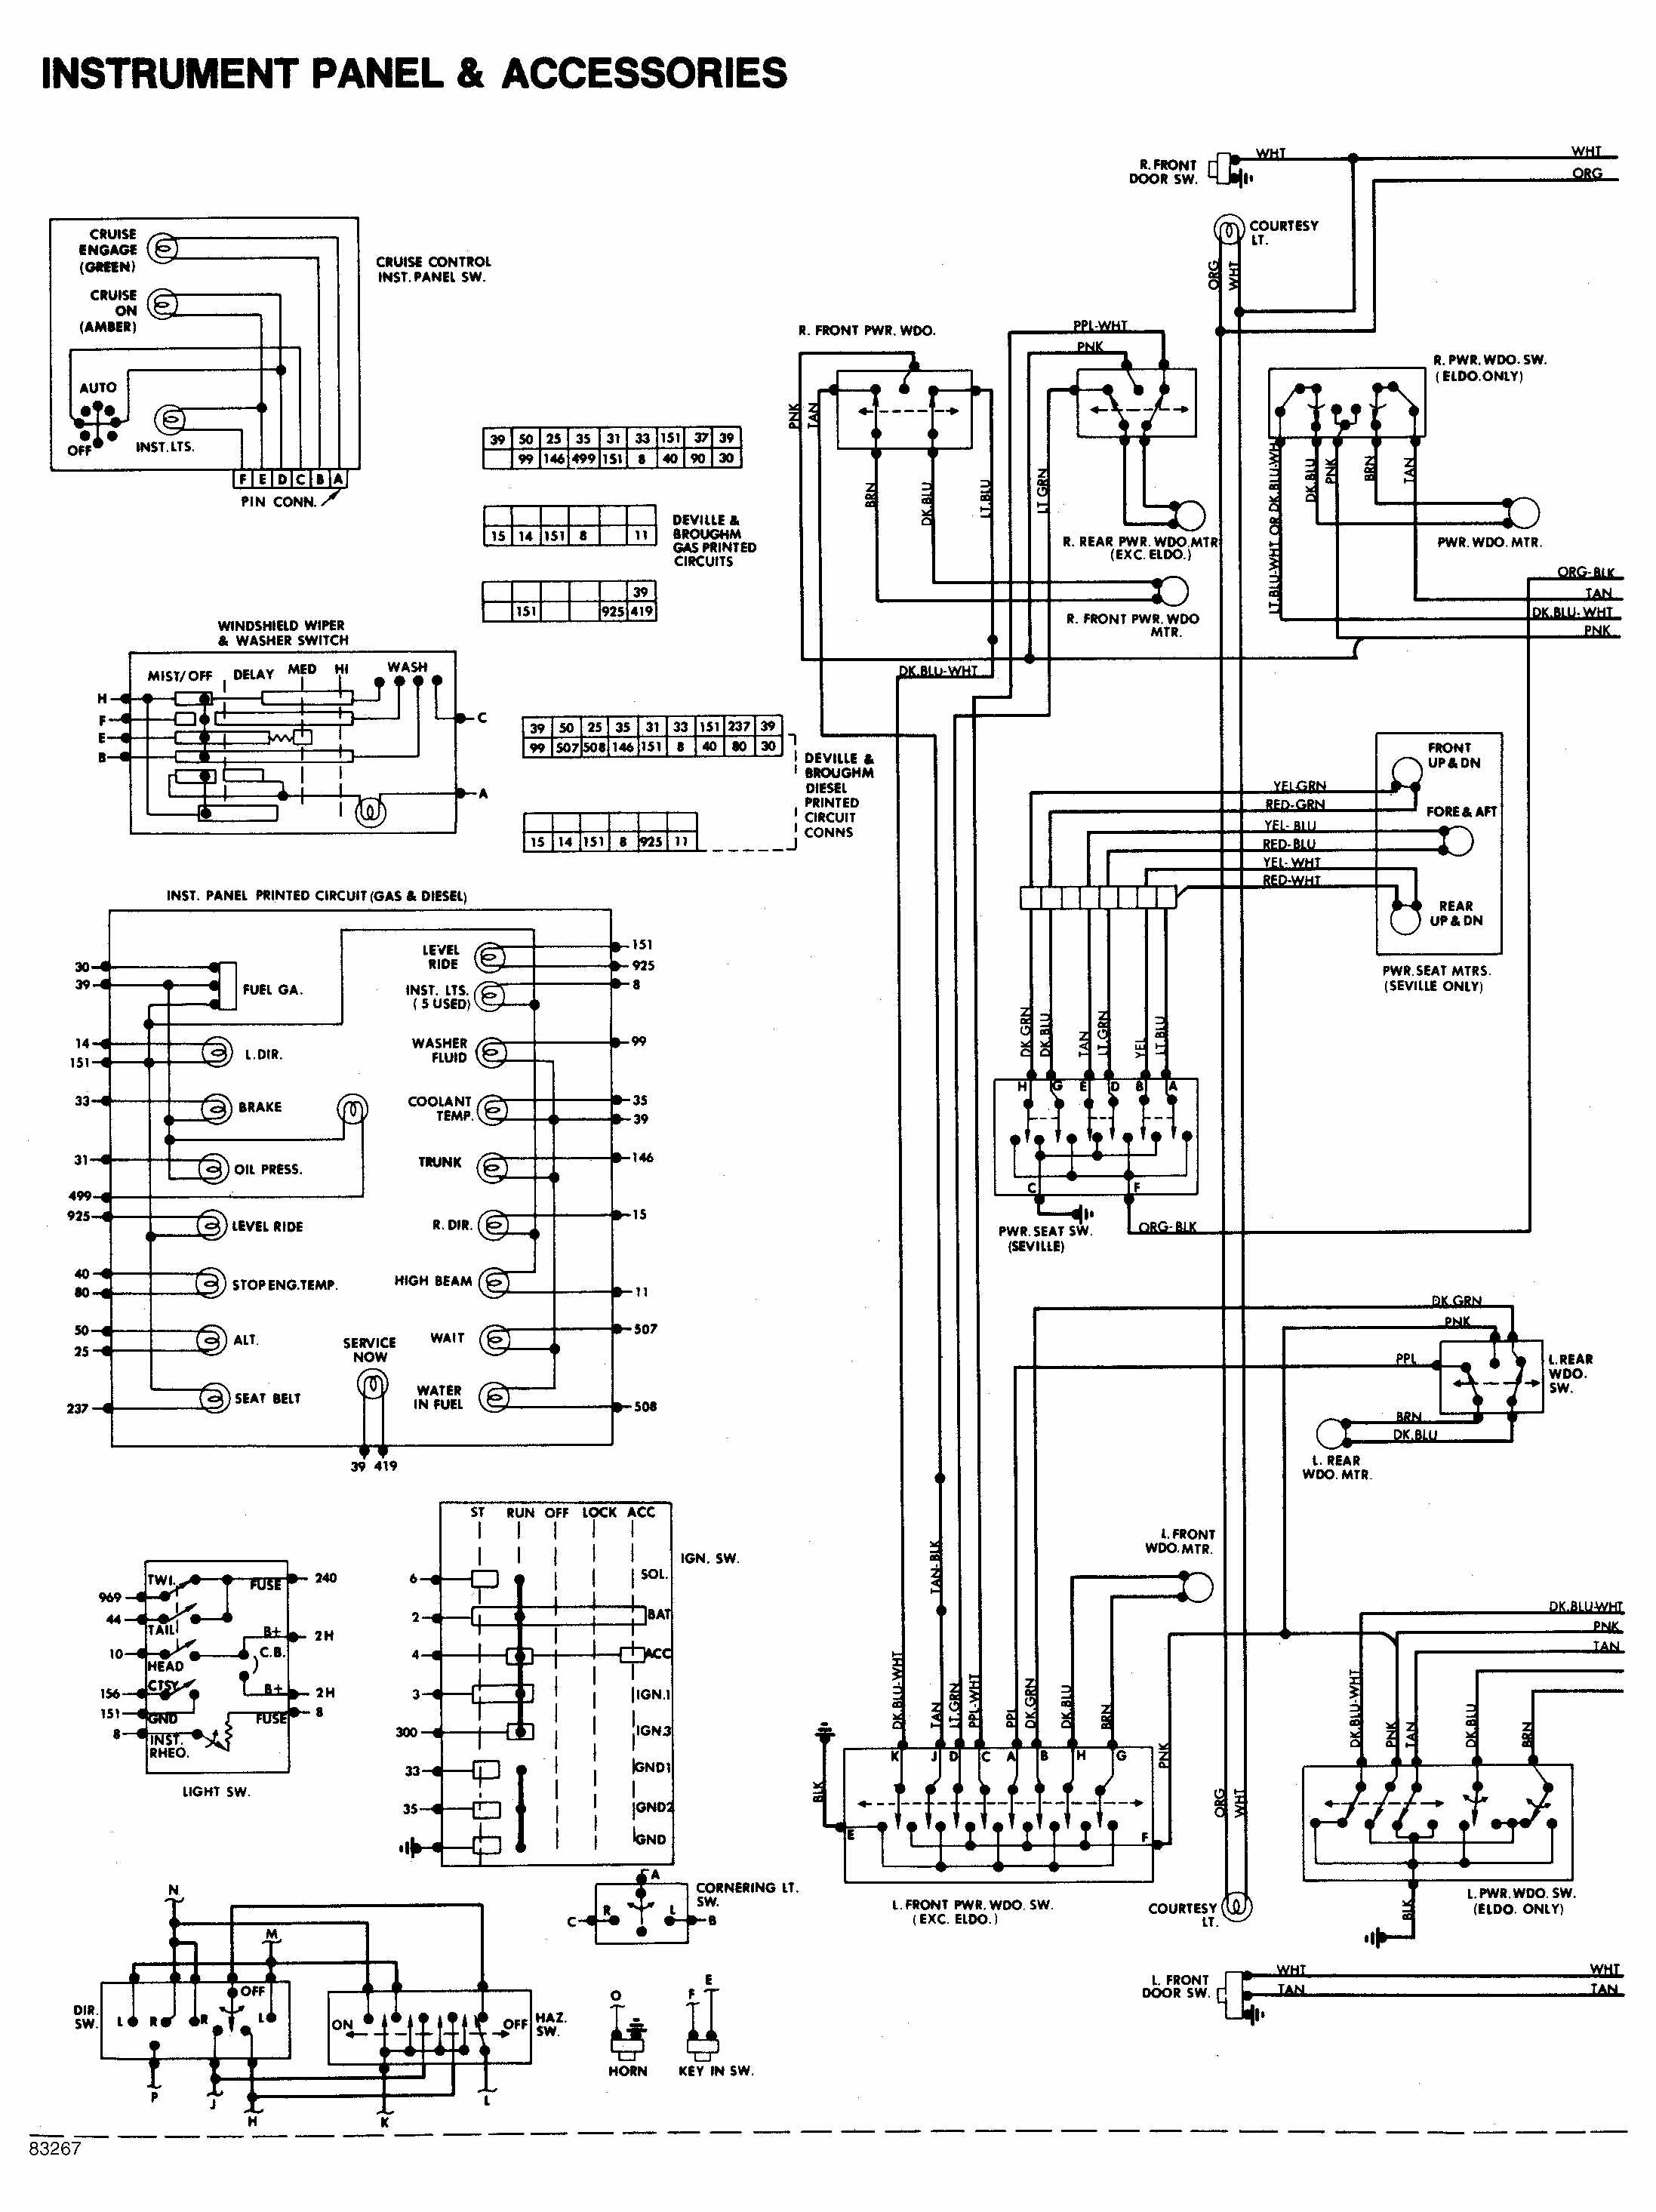 instrument panel and accessories wiring diagram of 1984 cadillac deville 1984 el camino wiring diagram 1970 el camino wiring diagram \u2022 free 1965 Chevelle Wiring Diagram at mifinder.co